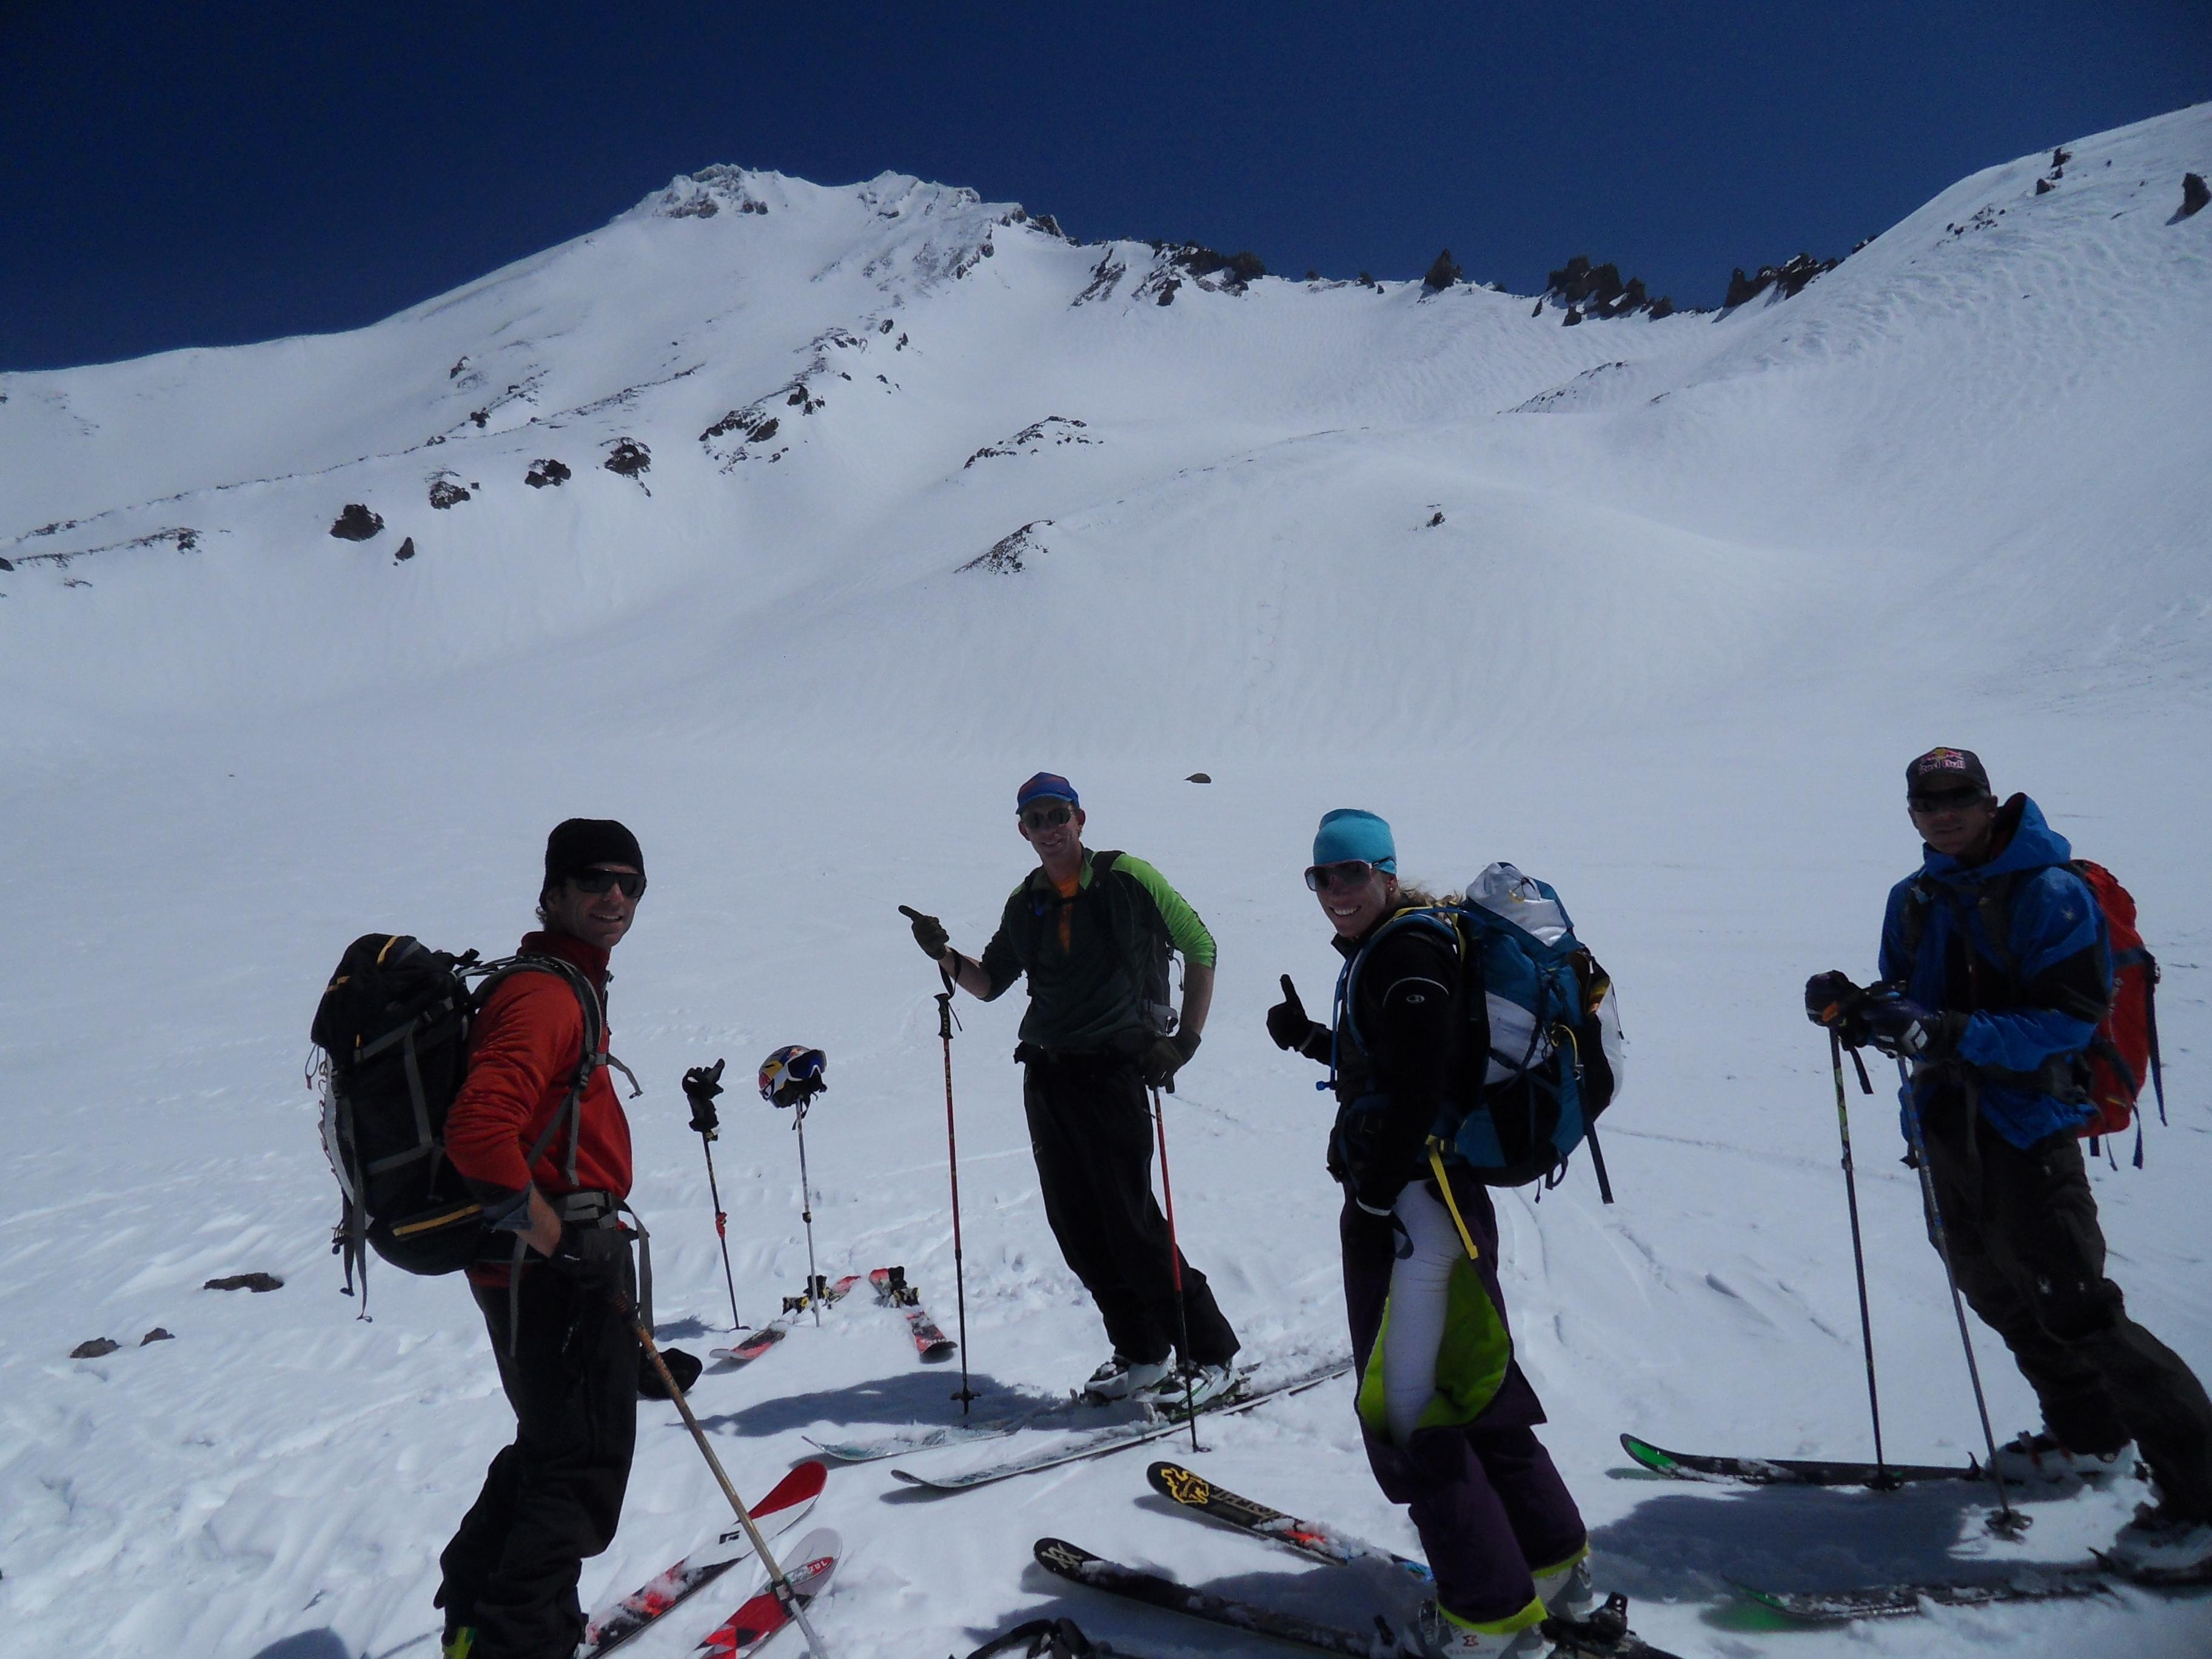 Chris Carr, Jim Morrison, Jess McMillan, and Chris Davenport after skiing West Face of Mount Shasta